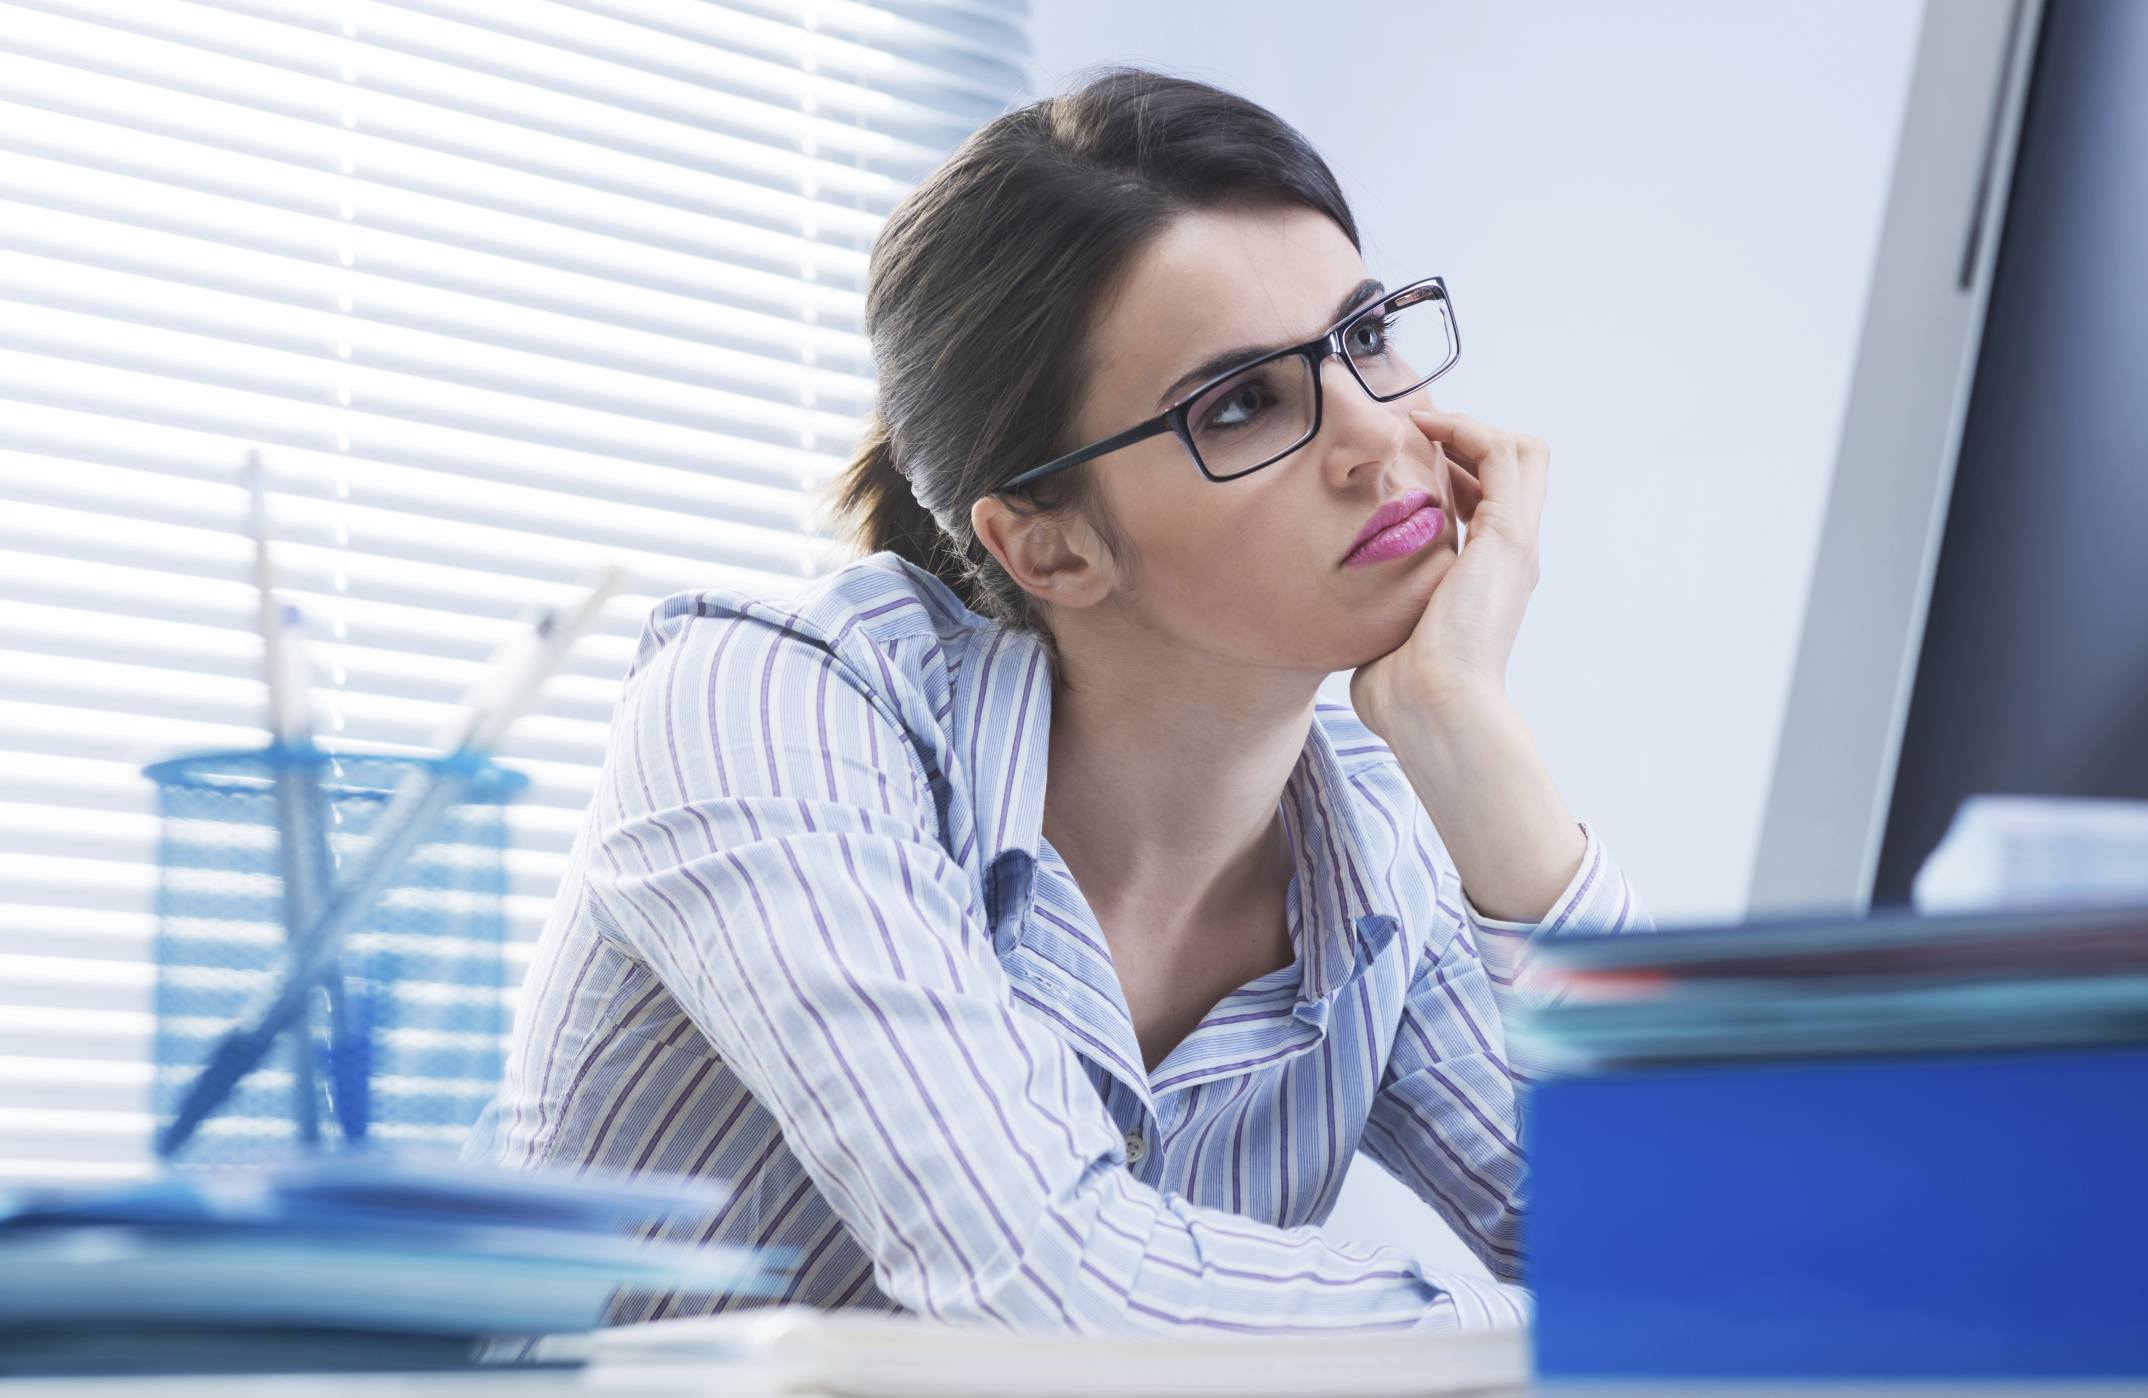 6 healthy ways to beat the mid-afternoon slump